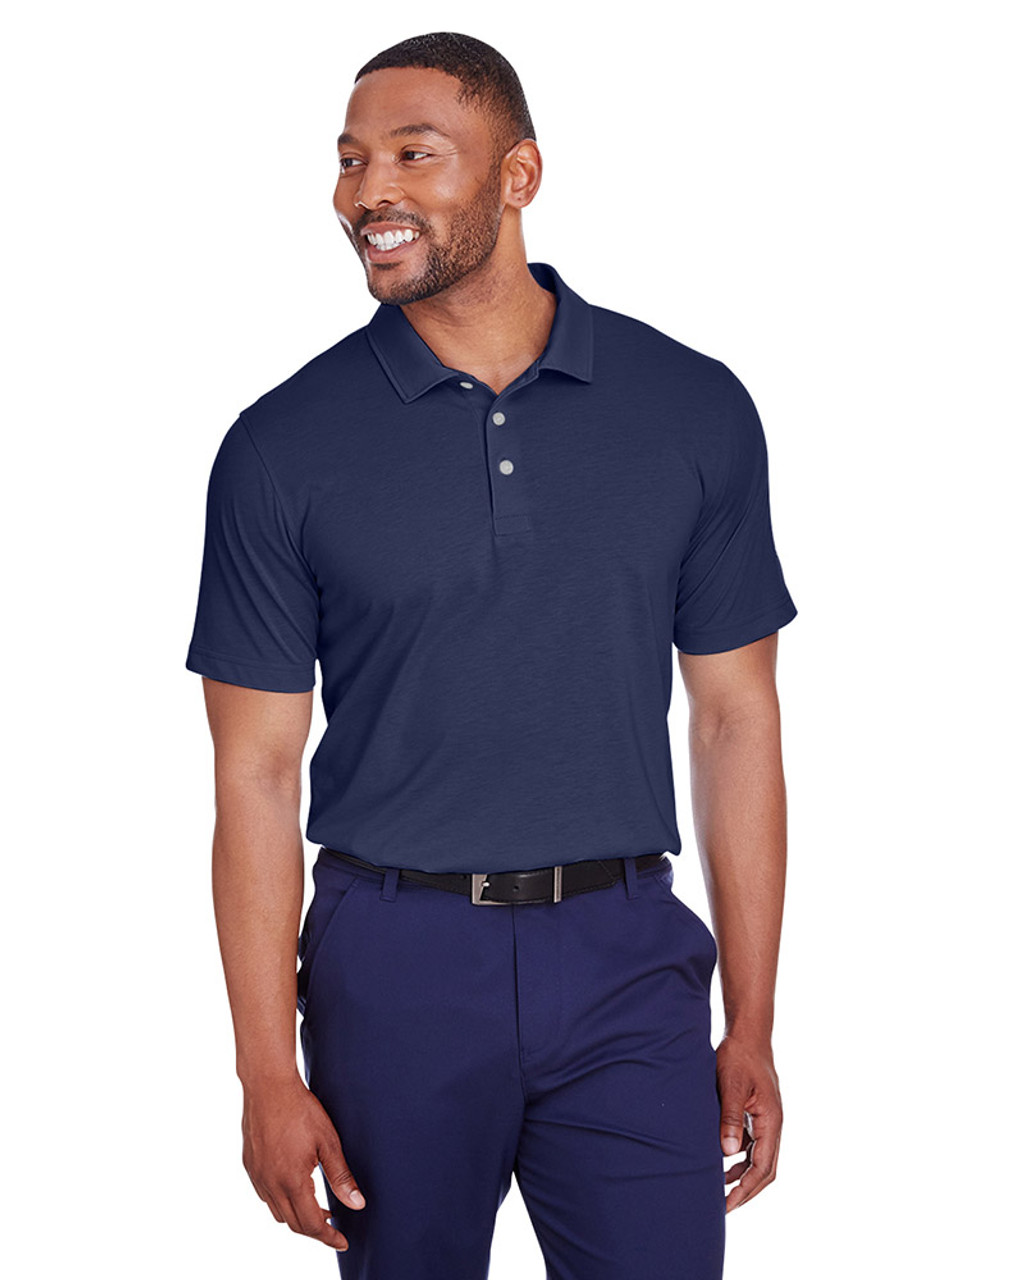 Peacoat - 596920 Puma Golf Men's Fusion Polo | Blankclothing.ca